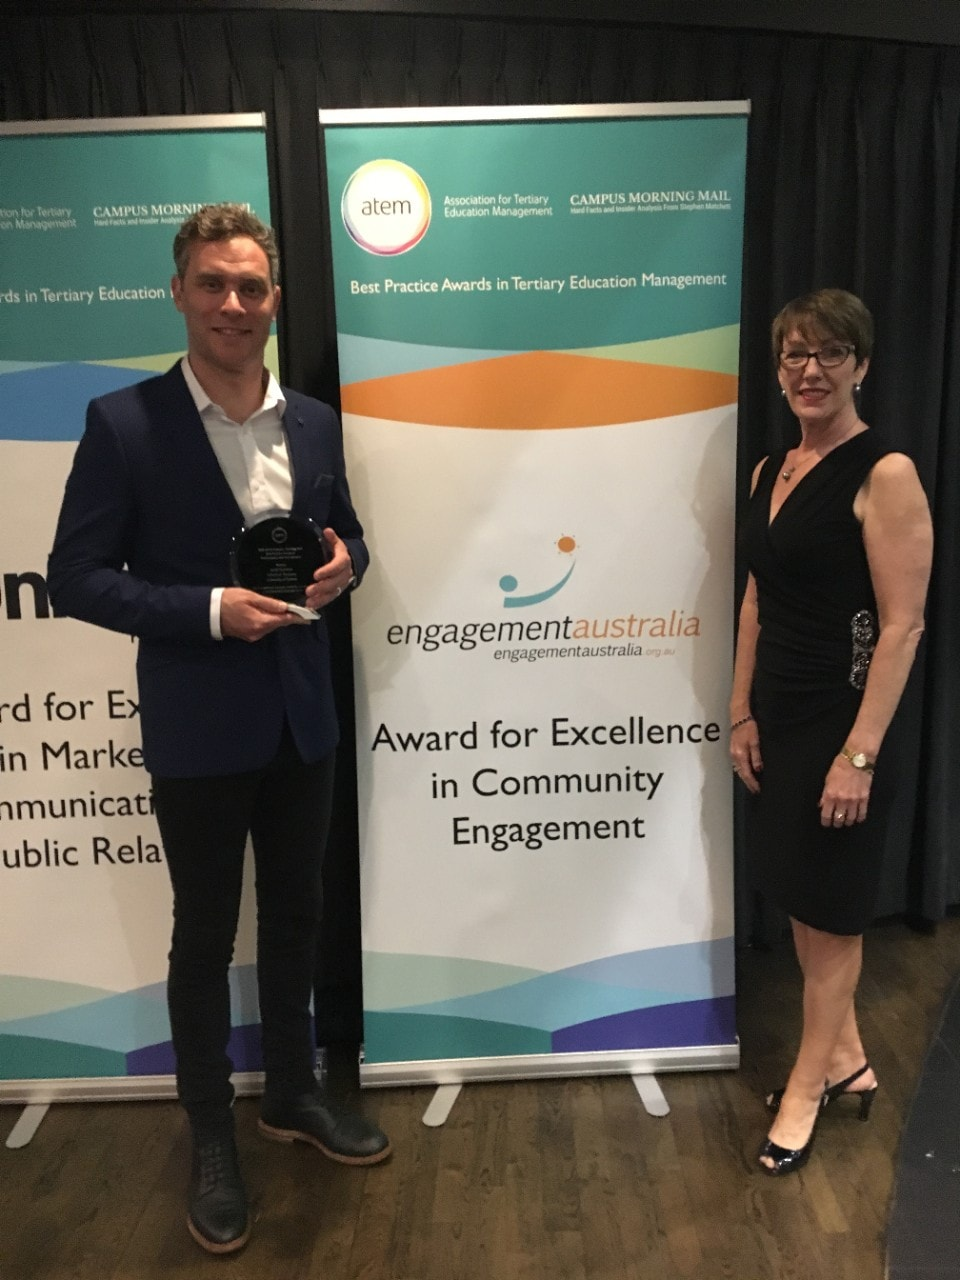 Jared Harrison and Fiona Sullivan from the Business School with the Engagement Australia Excellence in Community Engagement Award received at the 2018 Association for Tertiary Education Management best practice awards.